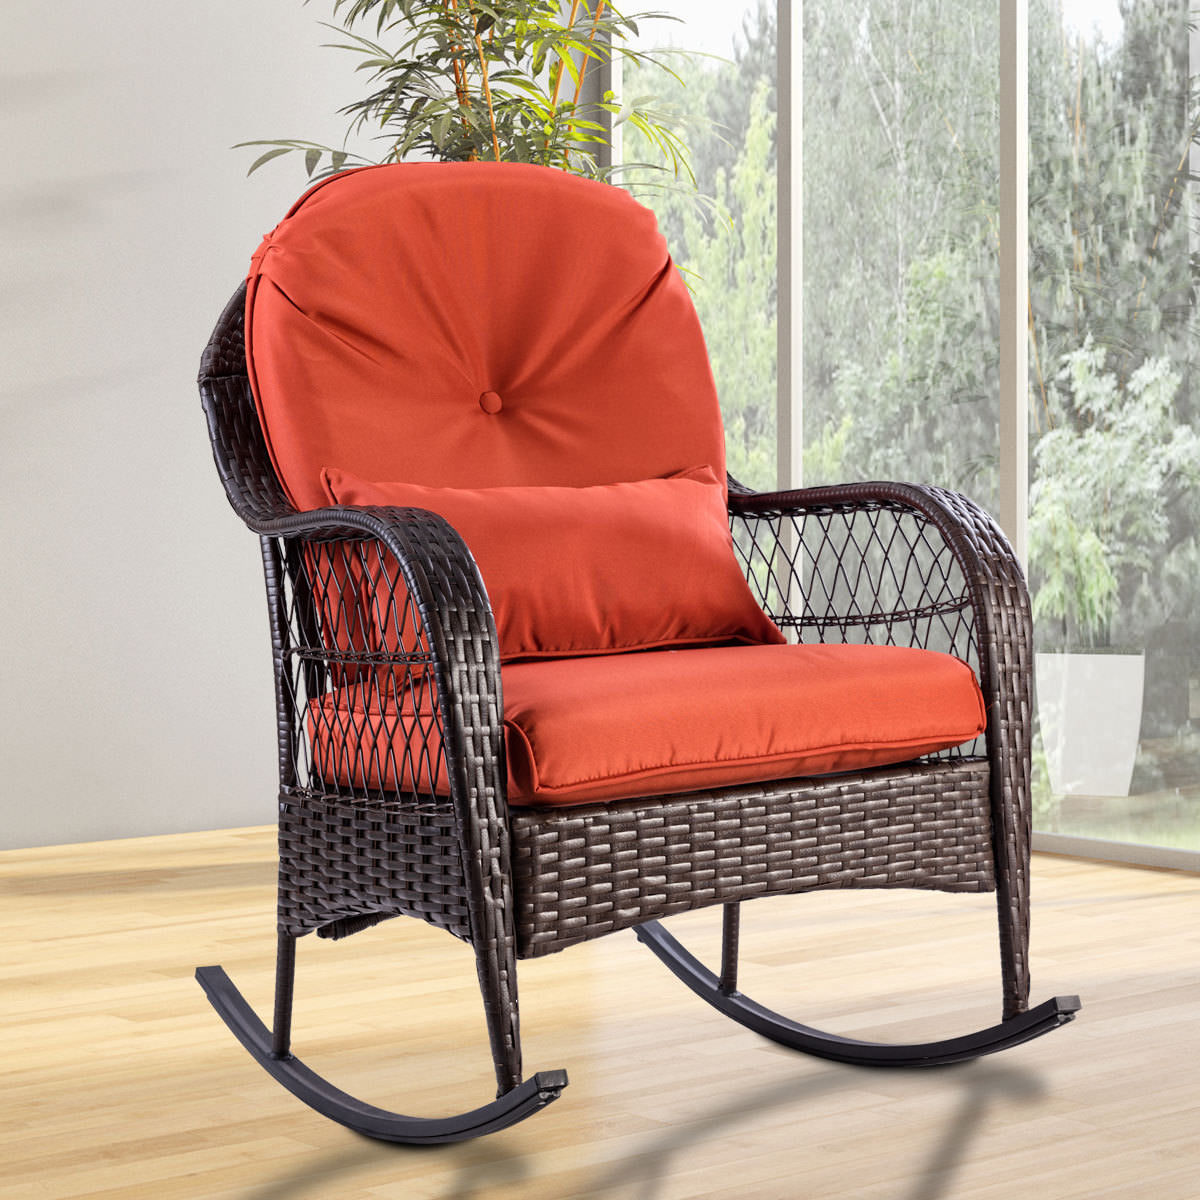 Wicker Rocking Chair Costway Outdoor Wicker Rocking Chair Porch Deck Rocker Patio Furniture W Cushion